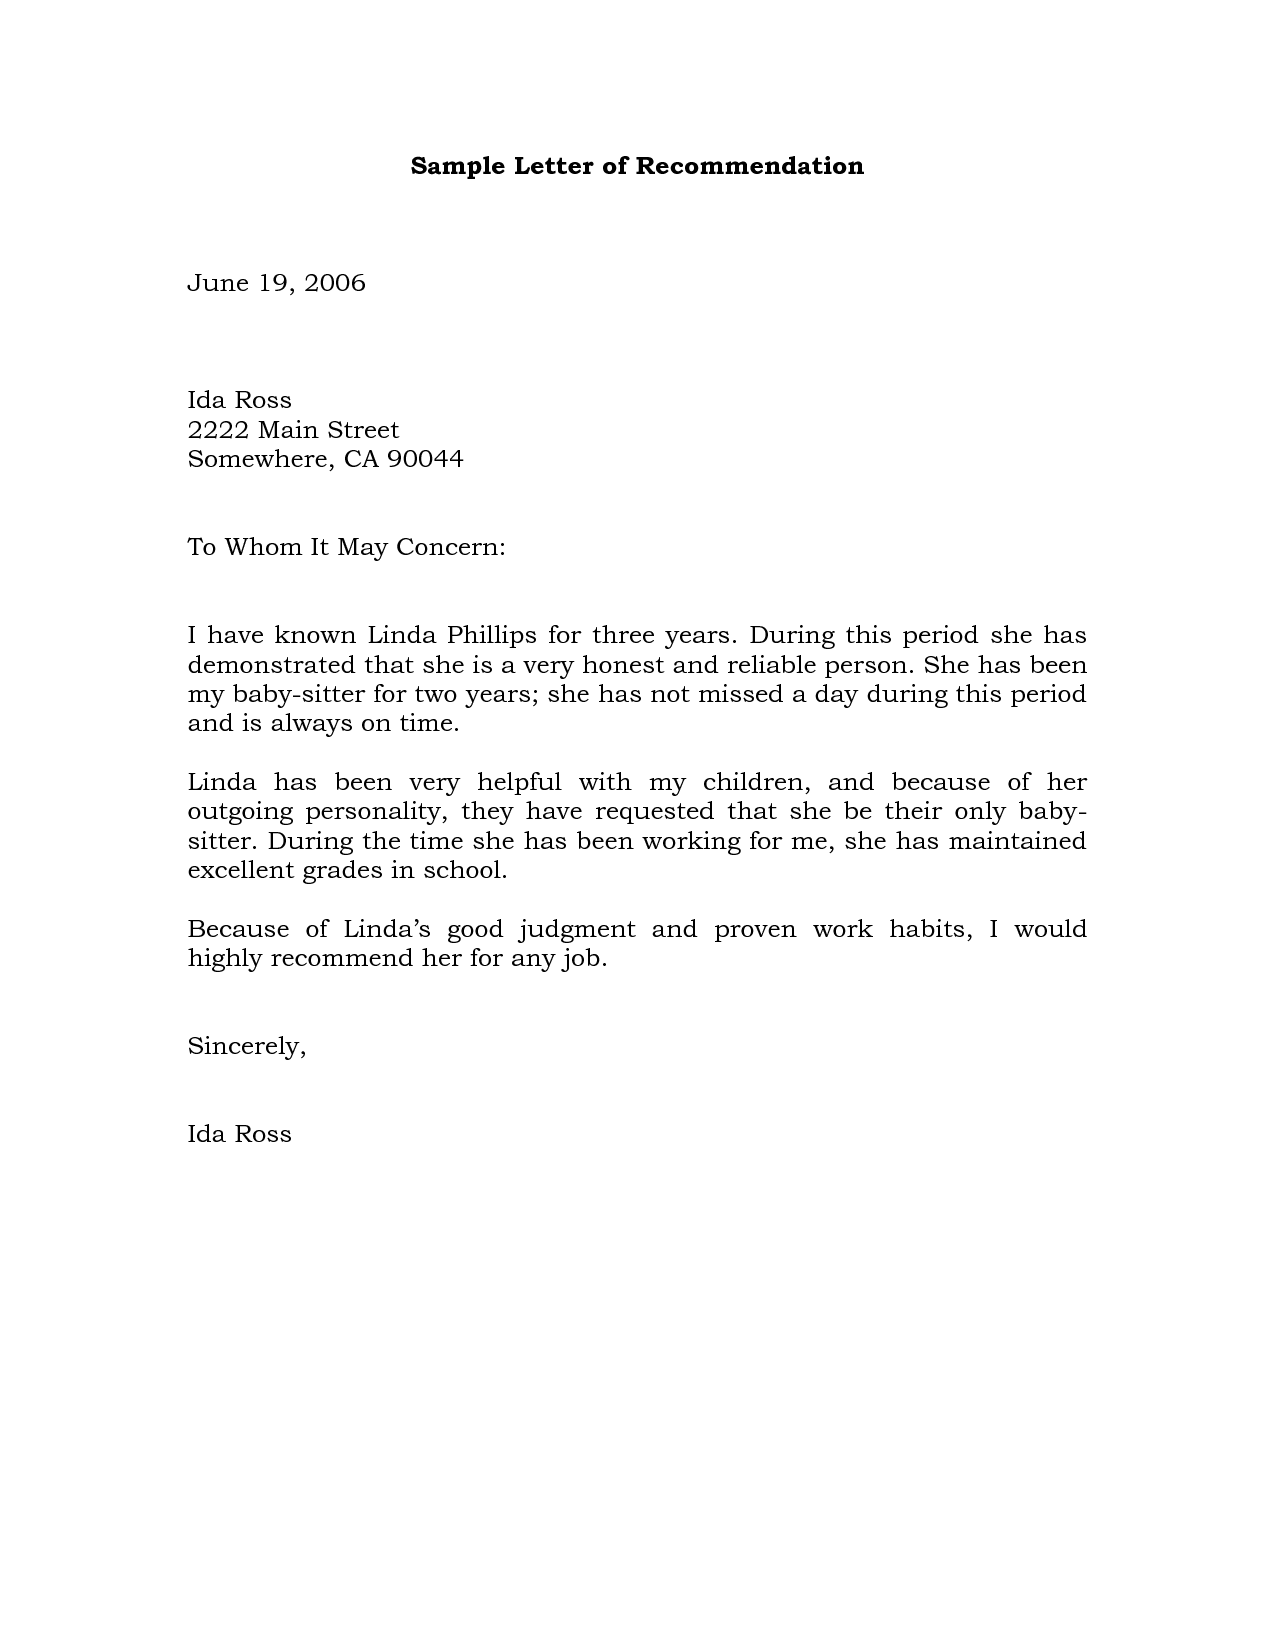 Sample Recommendation Letter Example  Product Recommendation Template